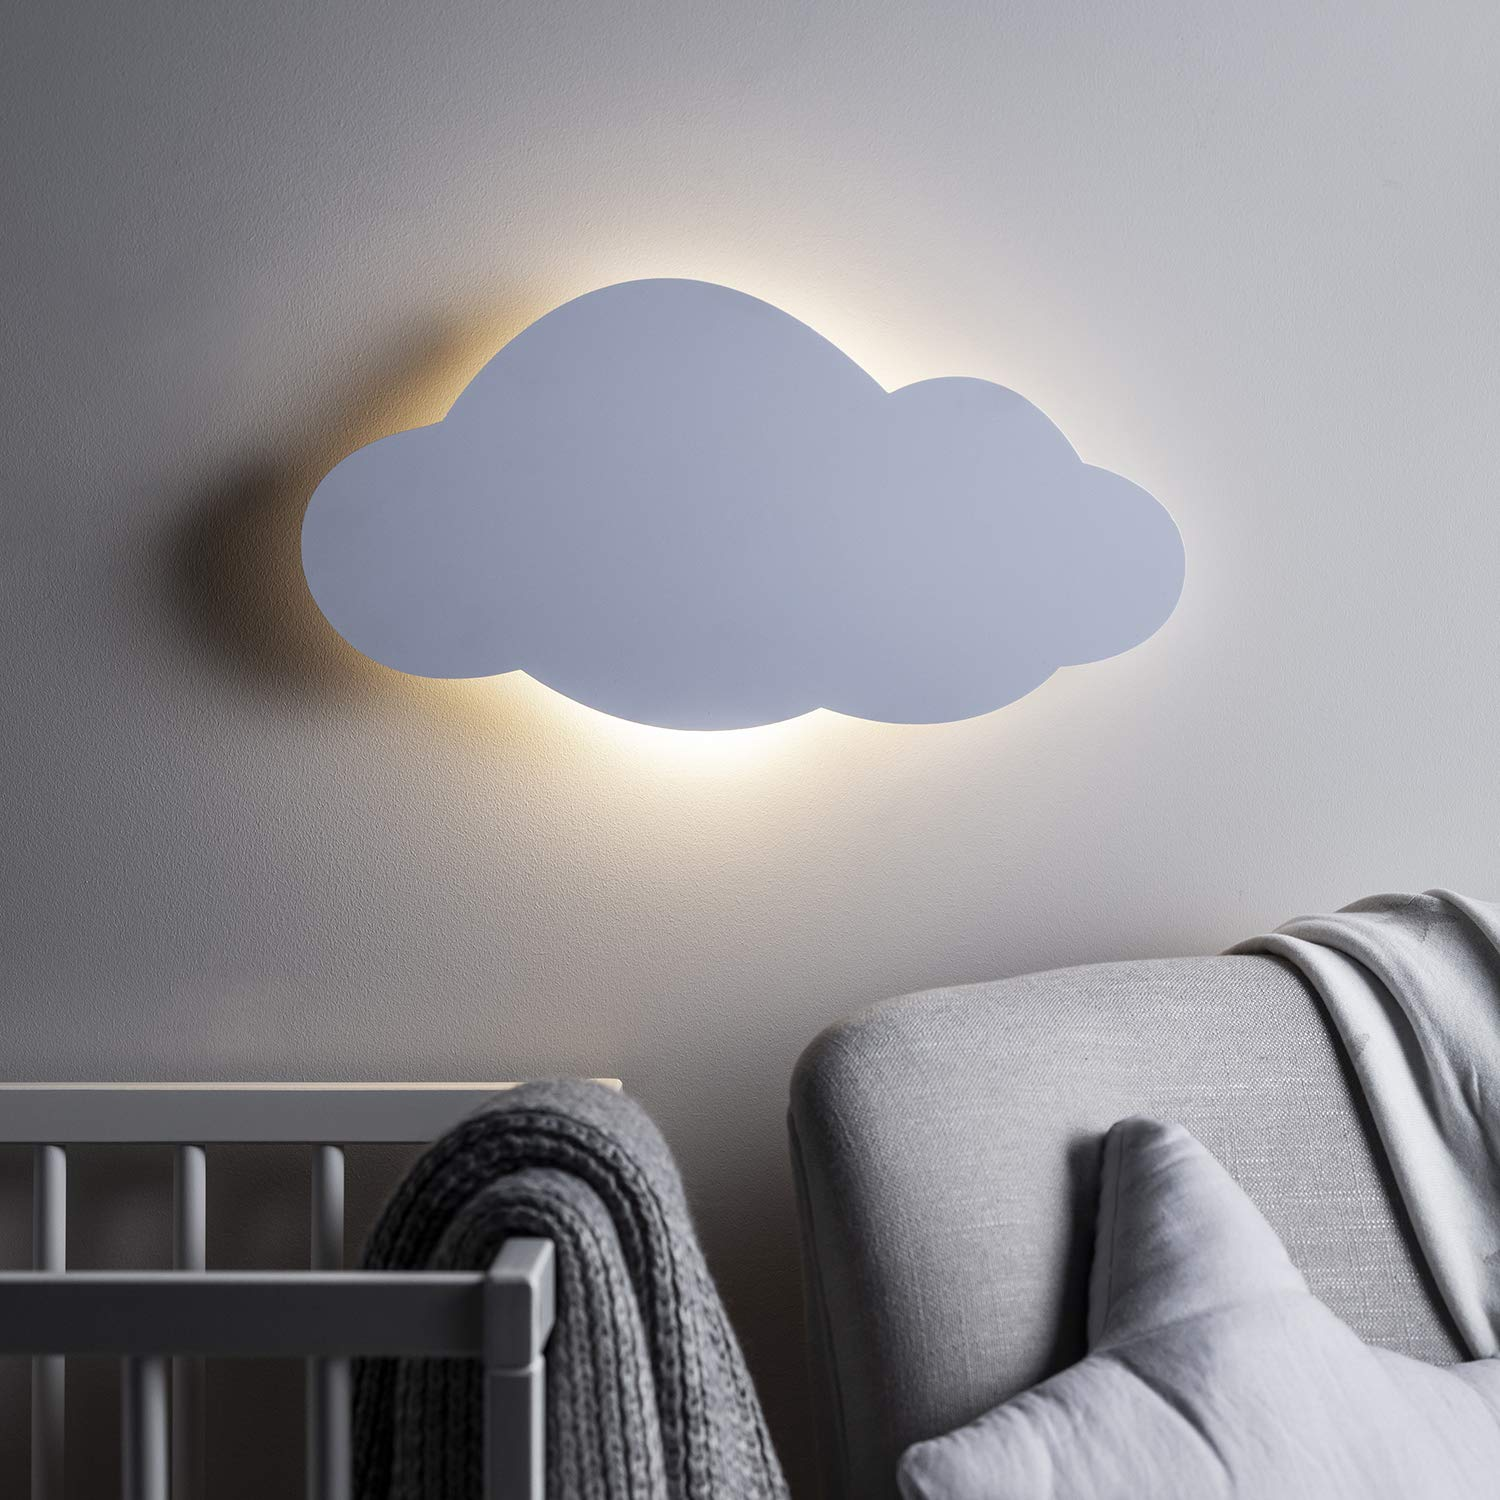 Lights4fun, Inc. Cloud Silhouette Battery Operated Bedroom Wall Night Light with Remote Control by Lights4fun, Inc.